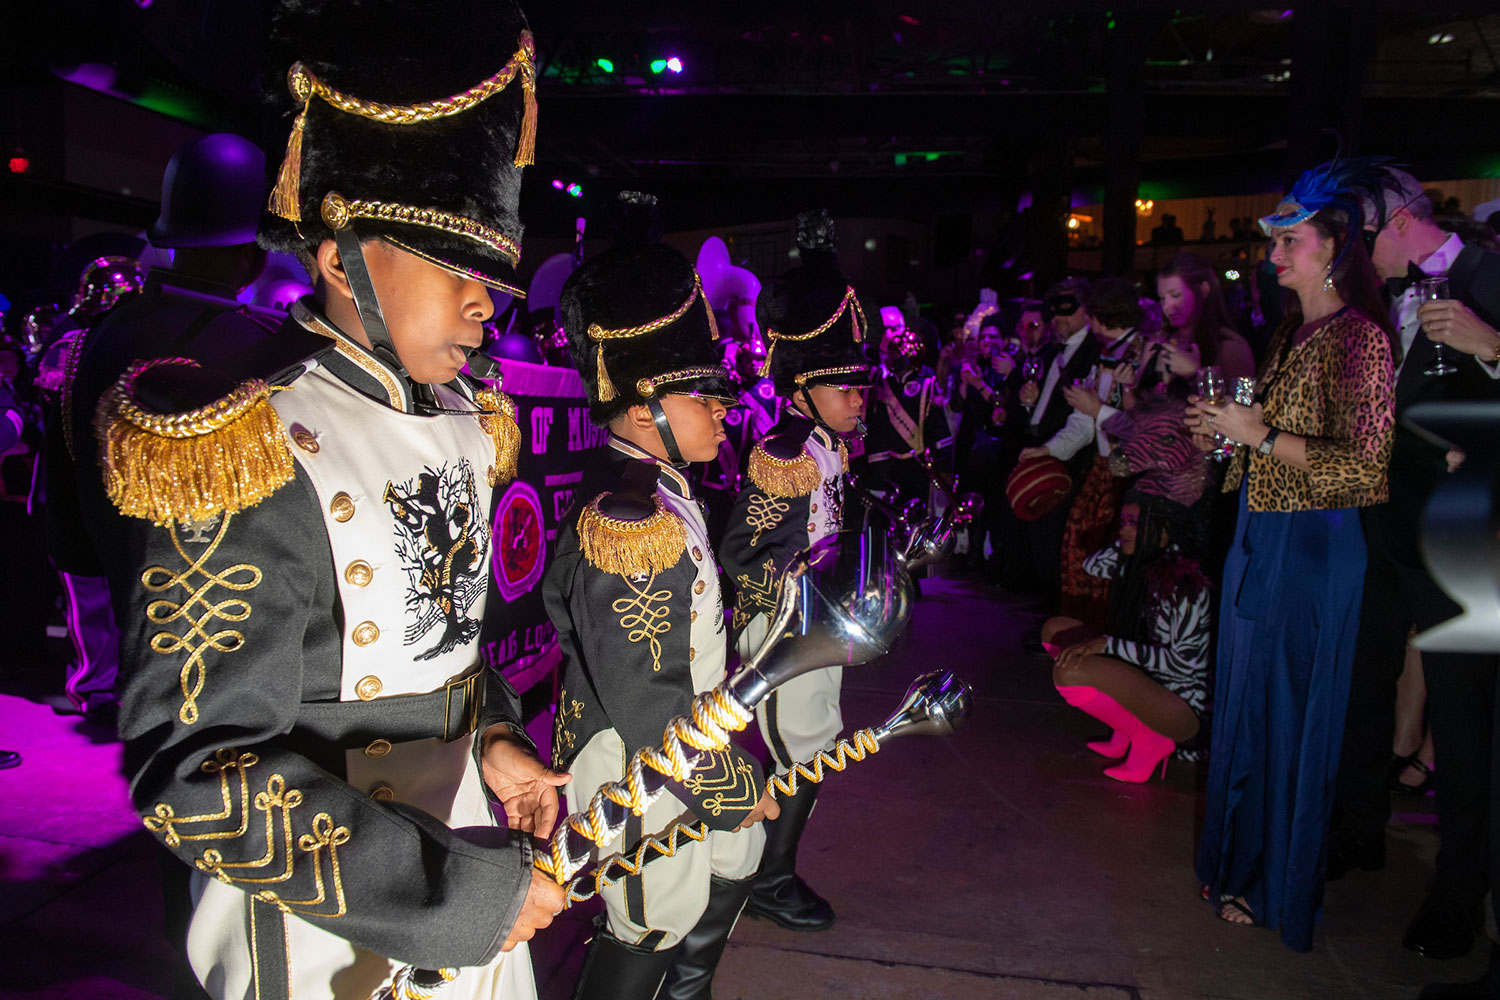 Bal Masqué Weekend   A CARNIVAL CELEBRATION TO NOURISH, EDUCATE AND EMPOWER THE YOUTH OF NEW ORLEANS  January 17 + 18, 2020  GET TICKETS  starting at $245 (through October 31)